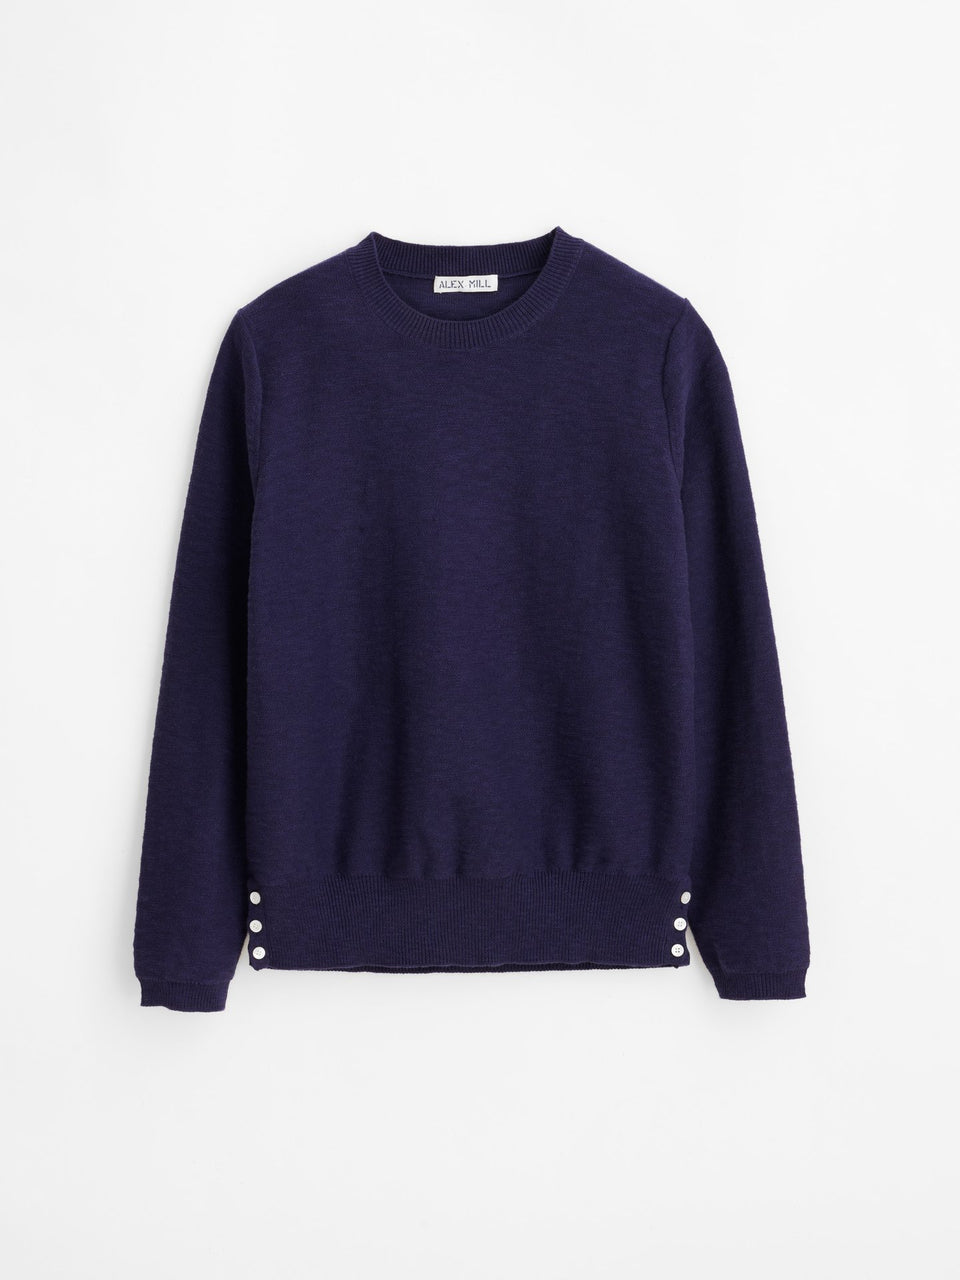 Alex Mill Isabella Button Side Sweater - Navy